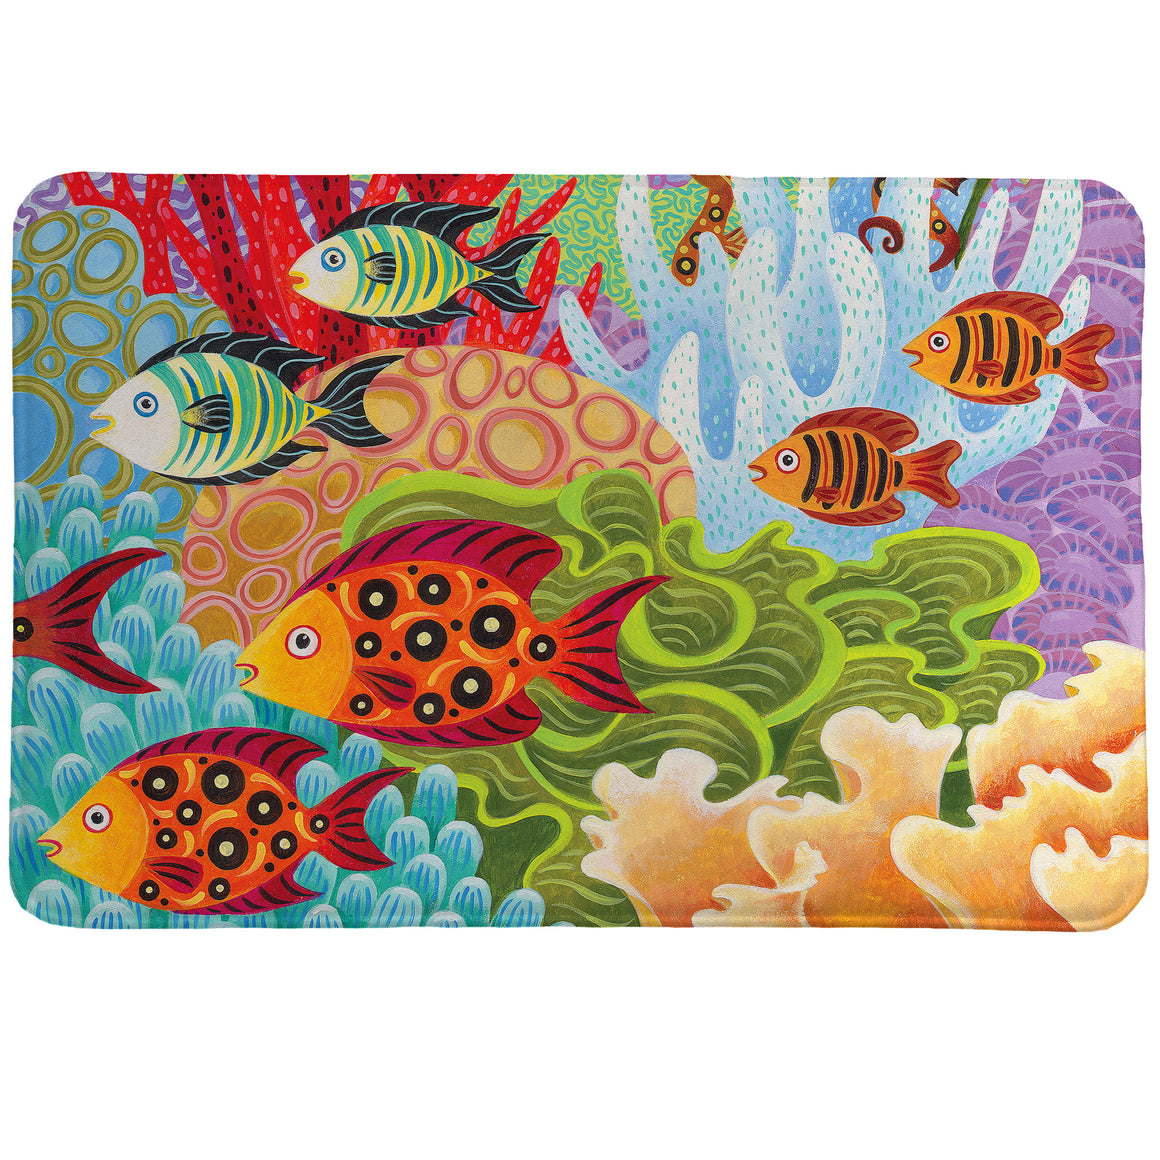 Fish in the Hood Memory Foam Rug uses vivid pinks, blues, greens, and purples to create fish set in a bright underwater scene.